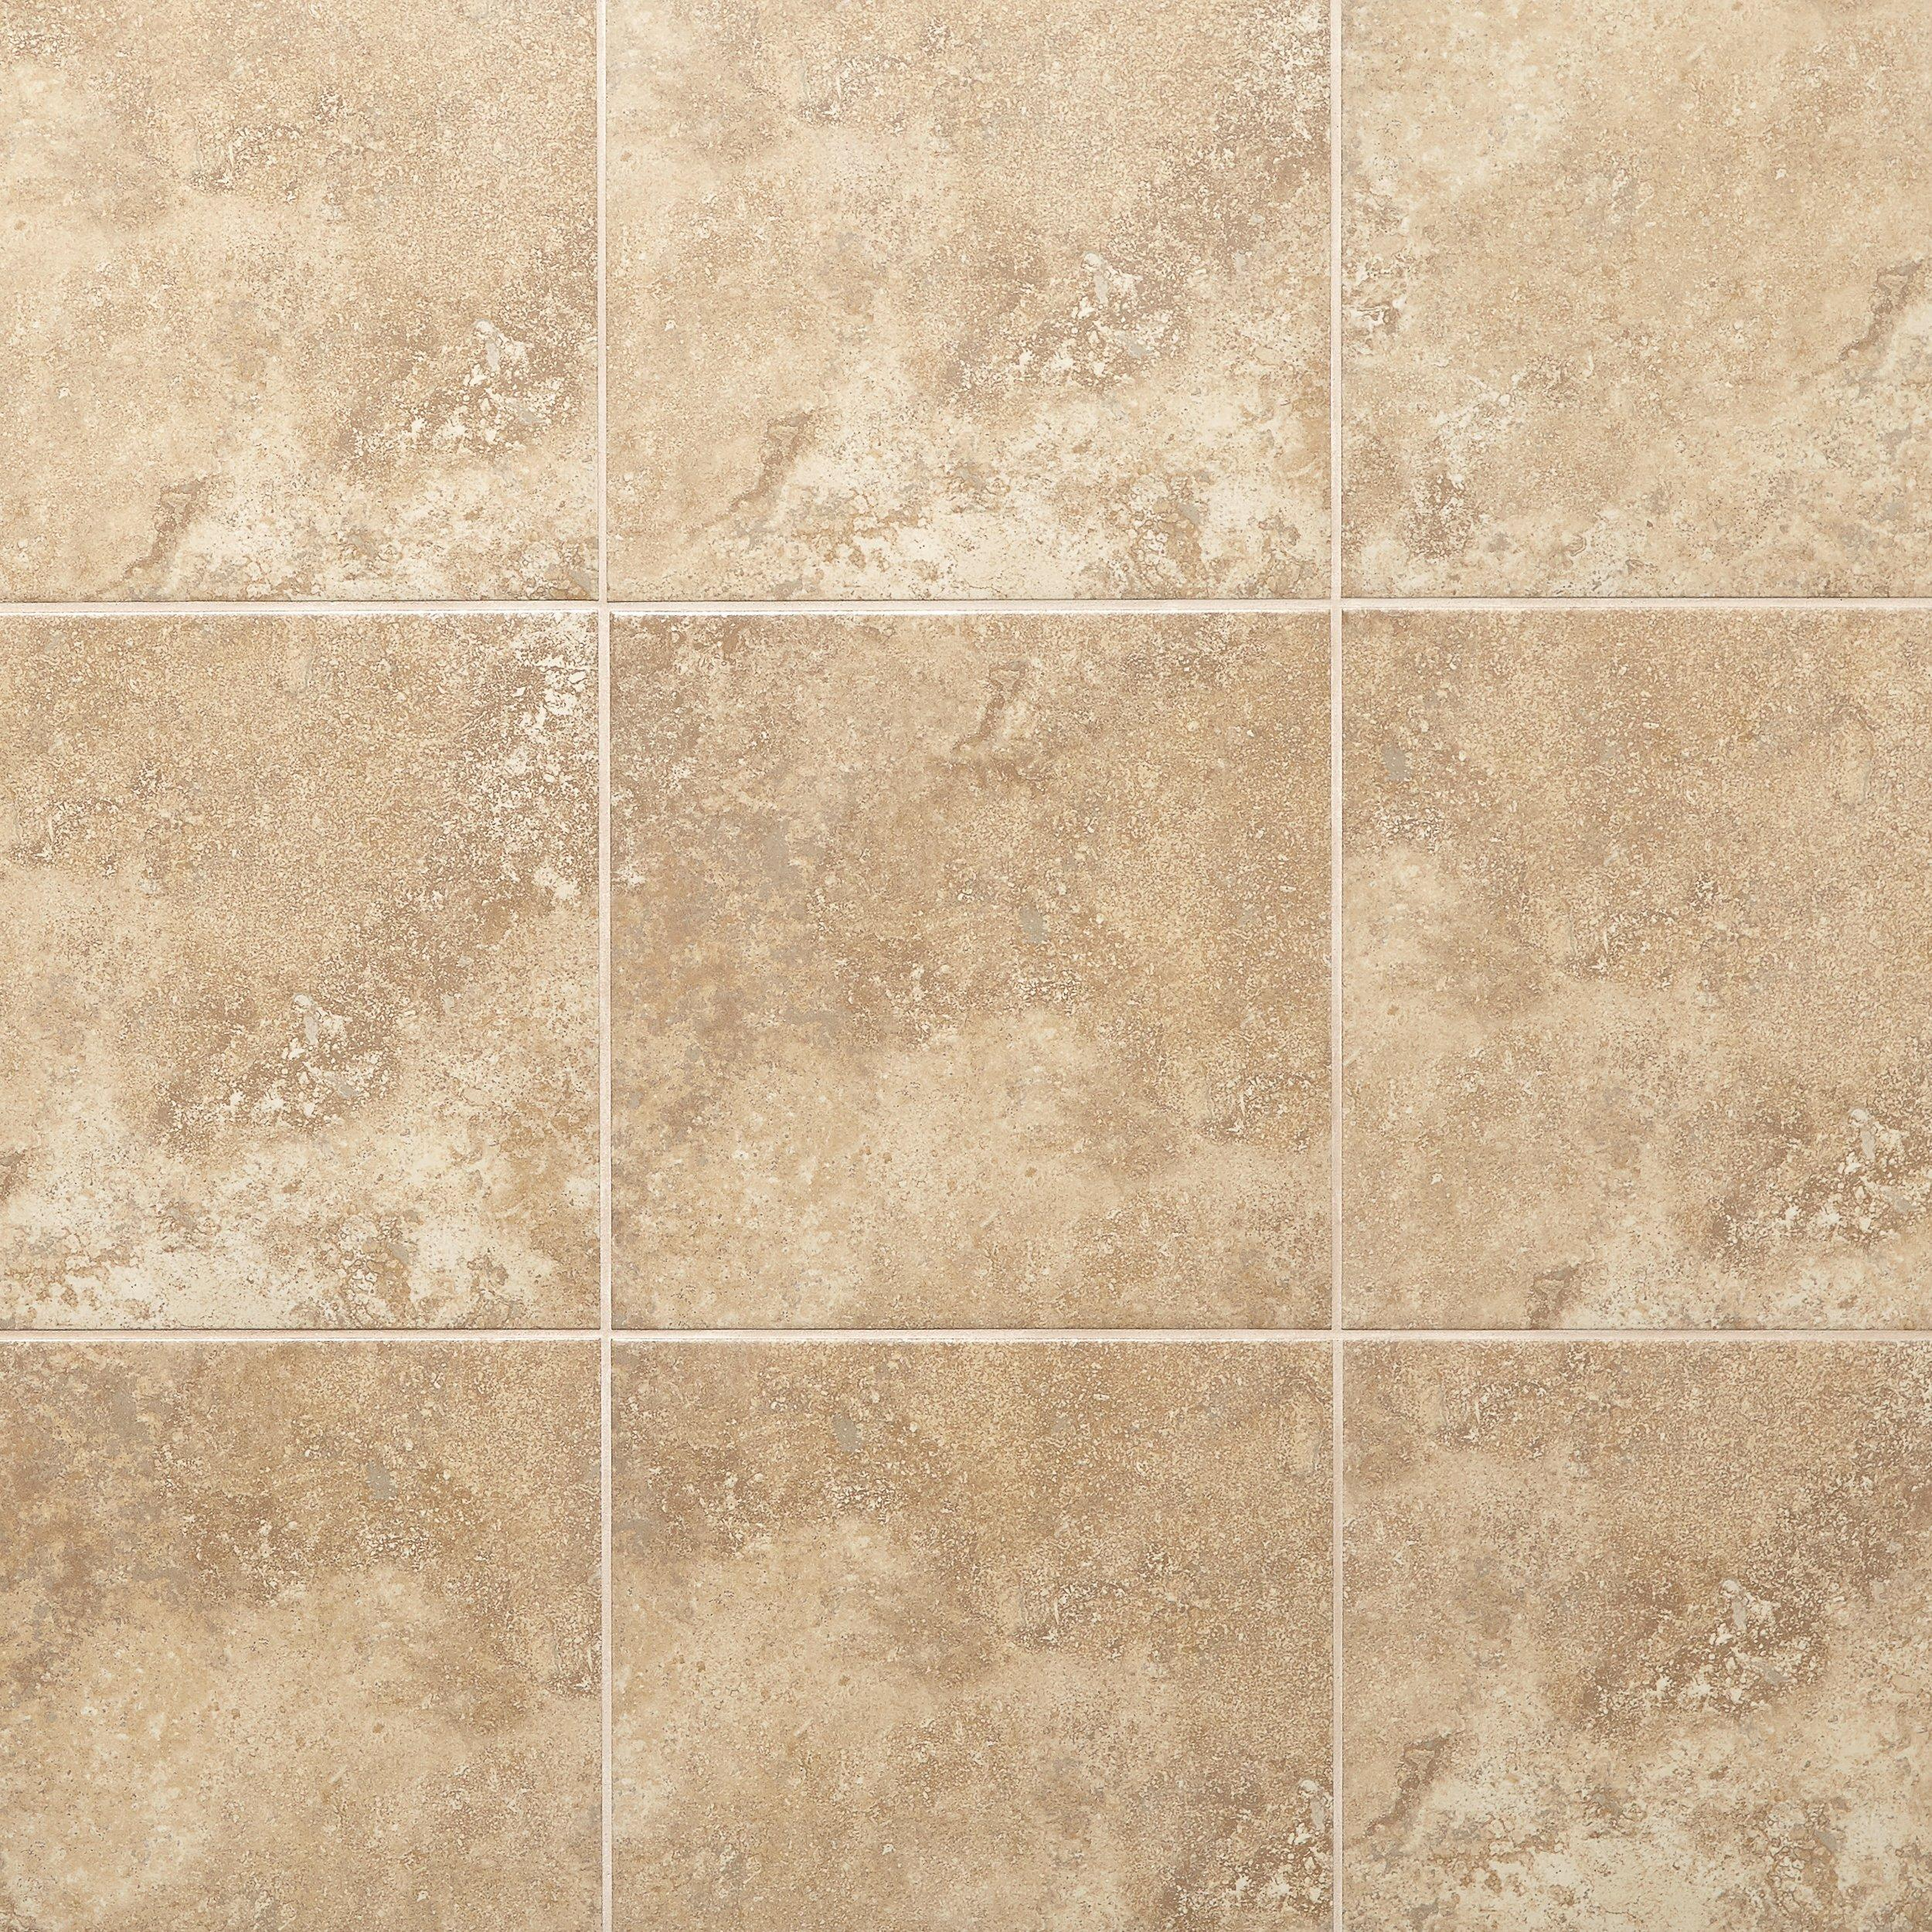 Ceramic tile angra cafe ceramic tile 13in x 13in 100011287 floor and decor dailygadgetfo Image collections